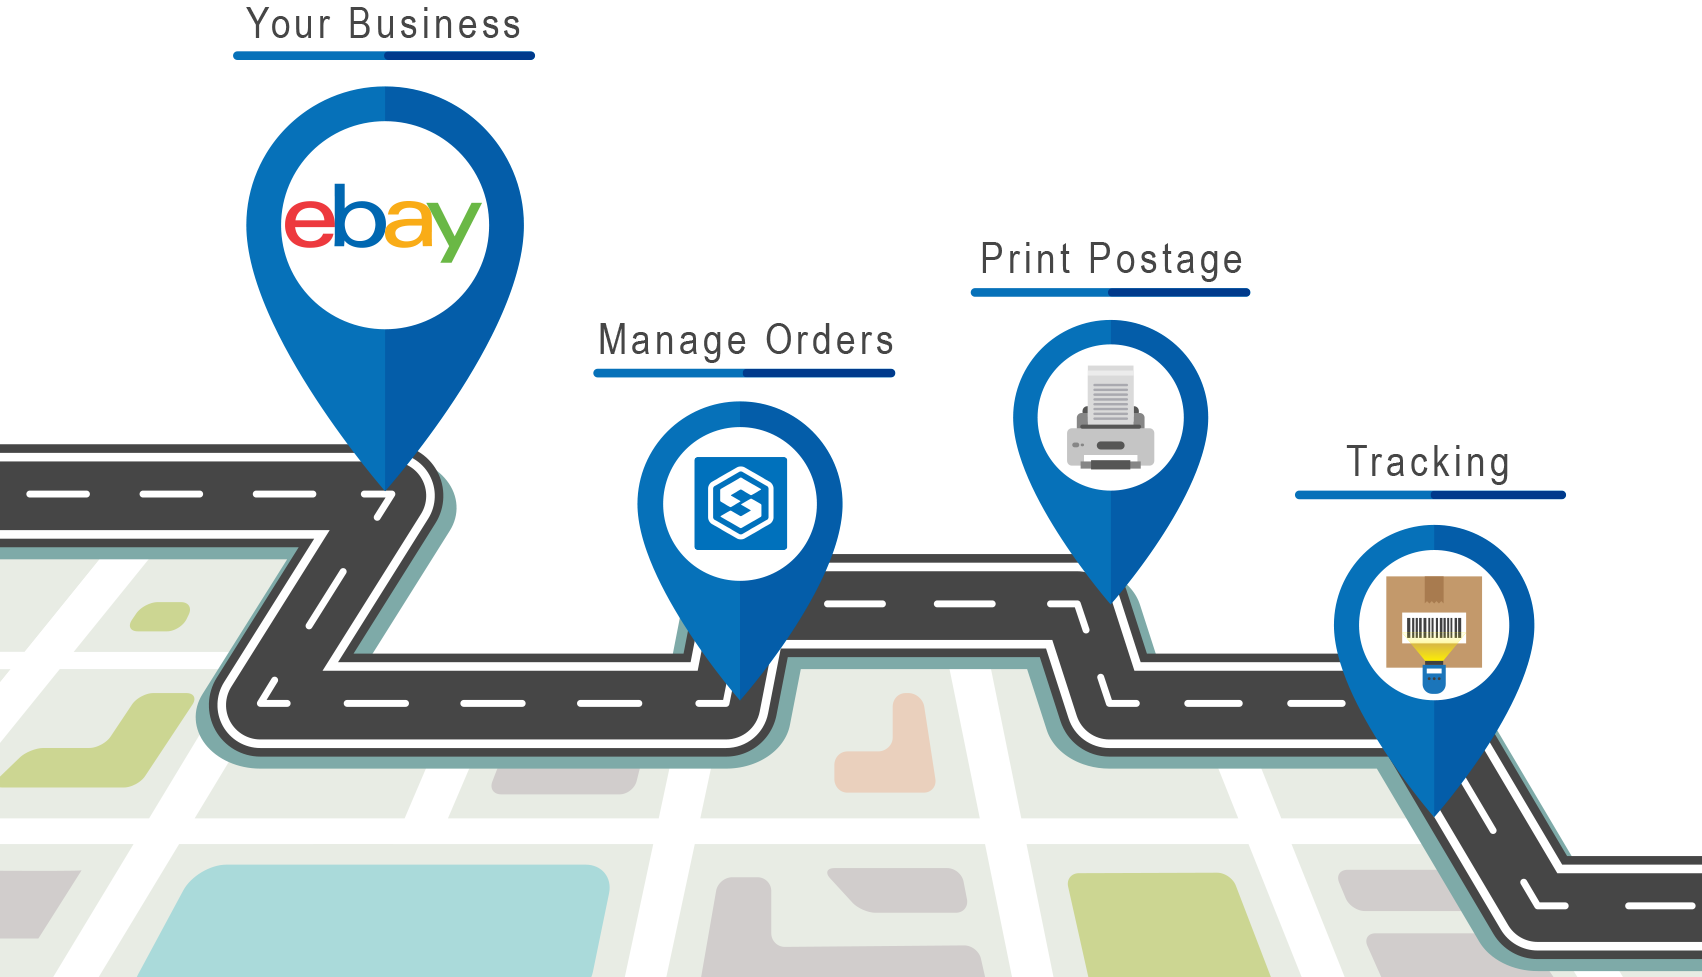 eBay integrates with SmartShyp within a few steps.